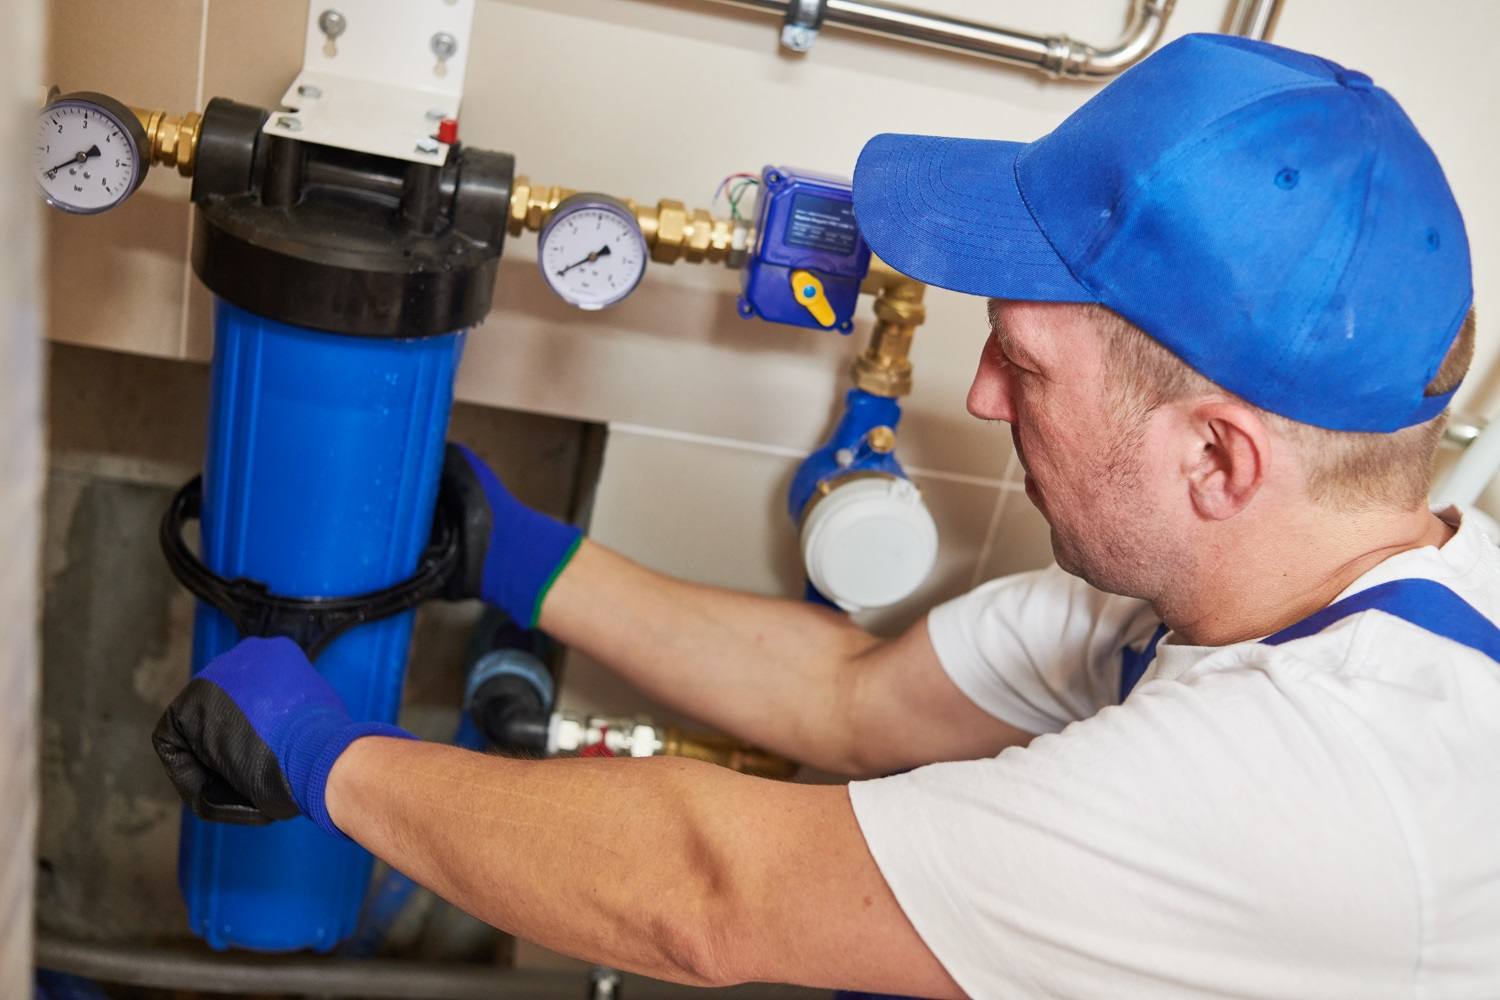 plumber Installing water filter into system